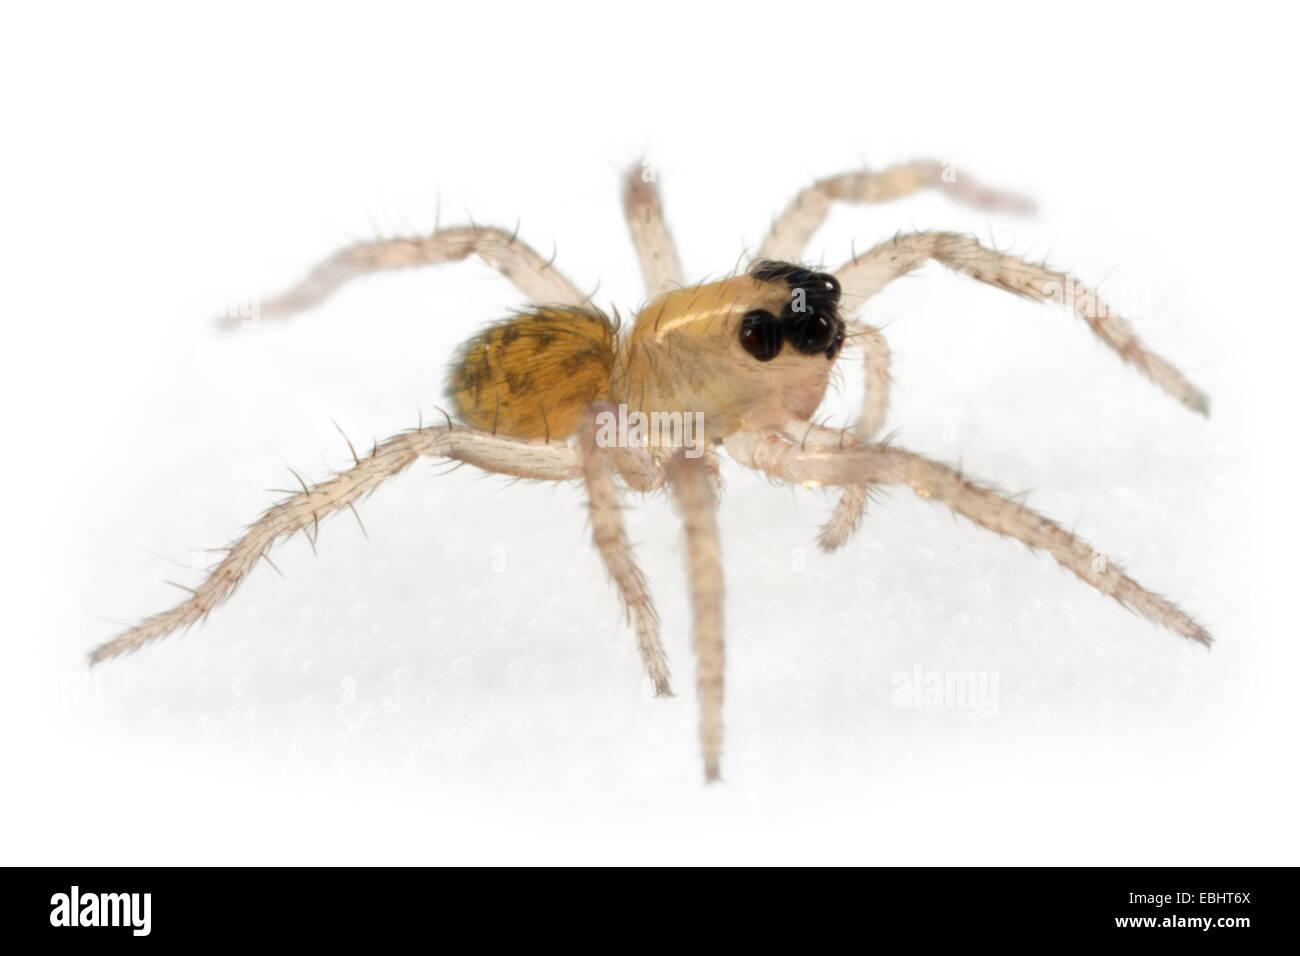 A Common Wolf-Spider (Pardosa pullata) spiderling, part of the family Lycosidae - Wolf spiders. - Stock Image